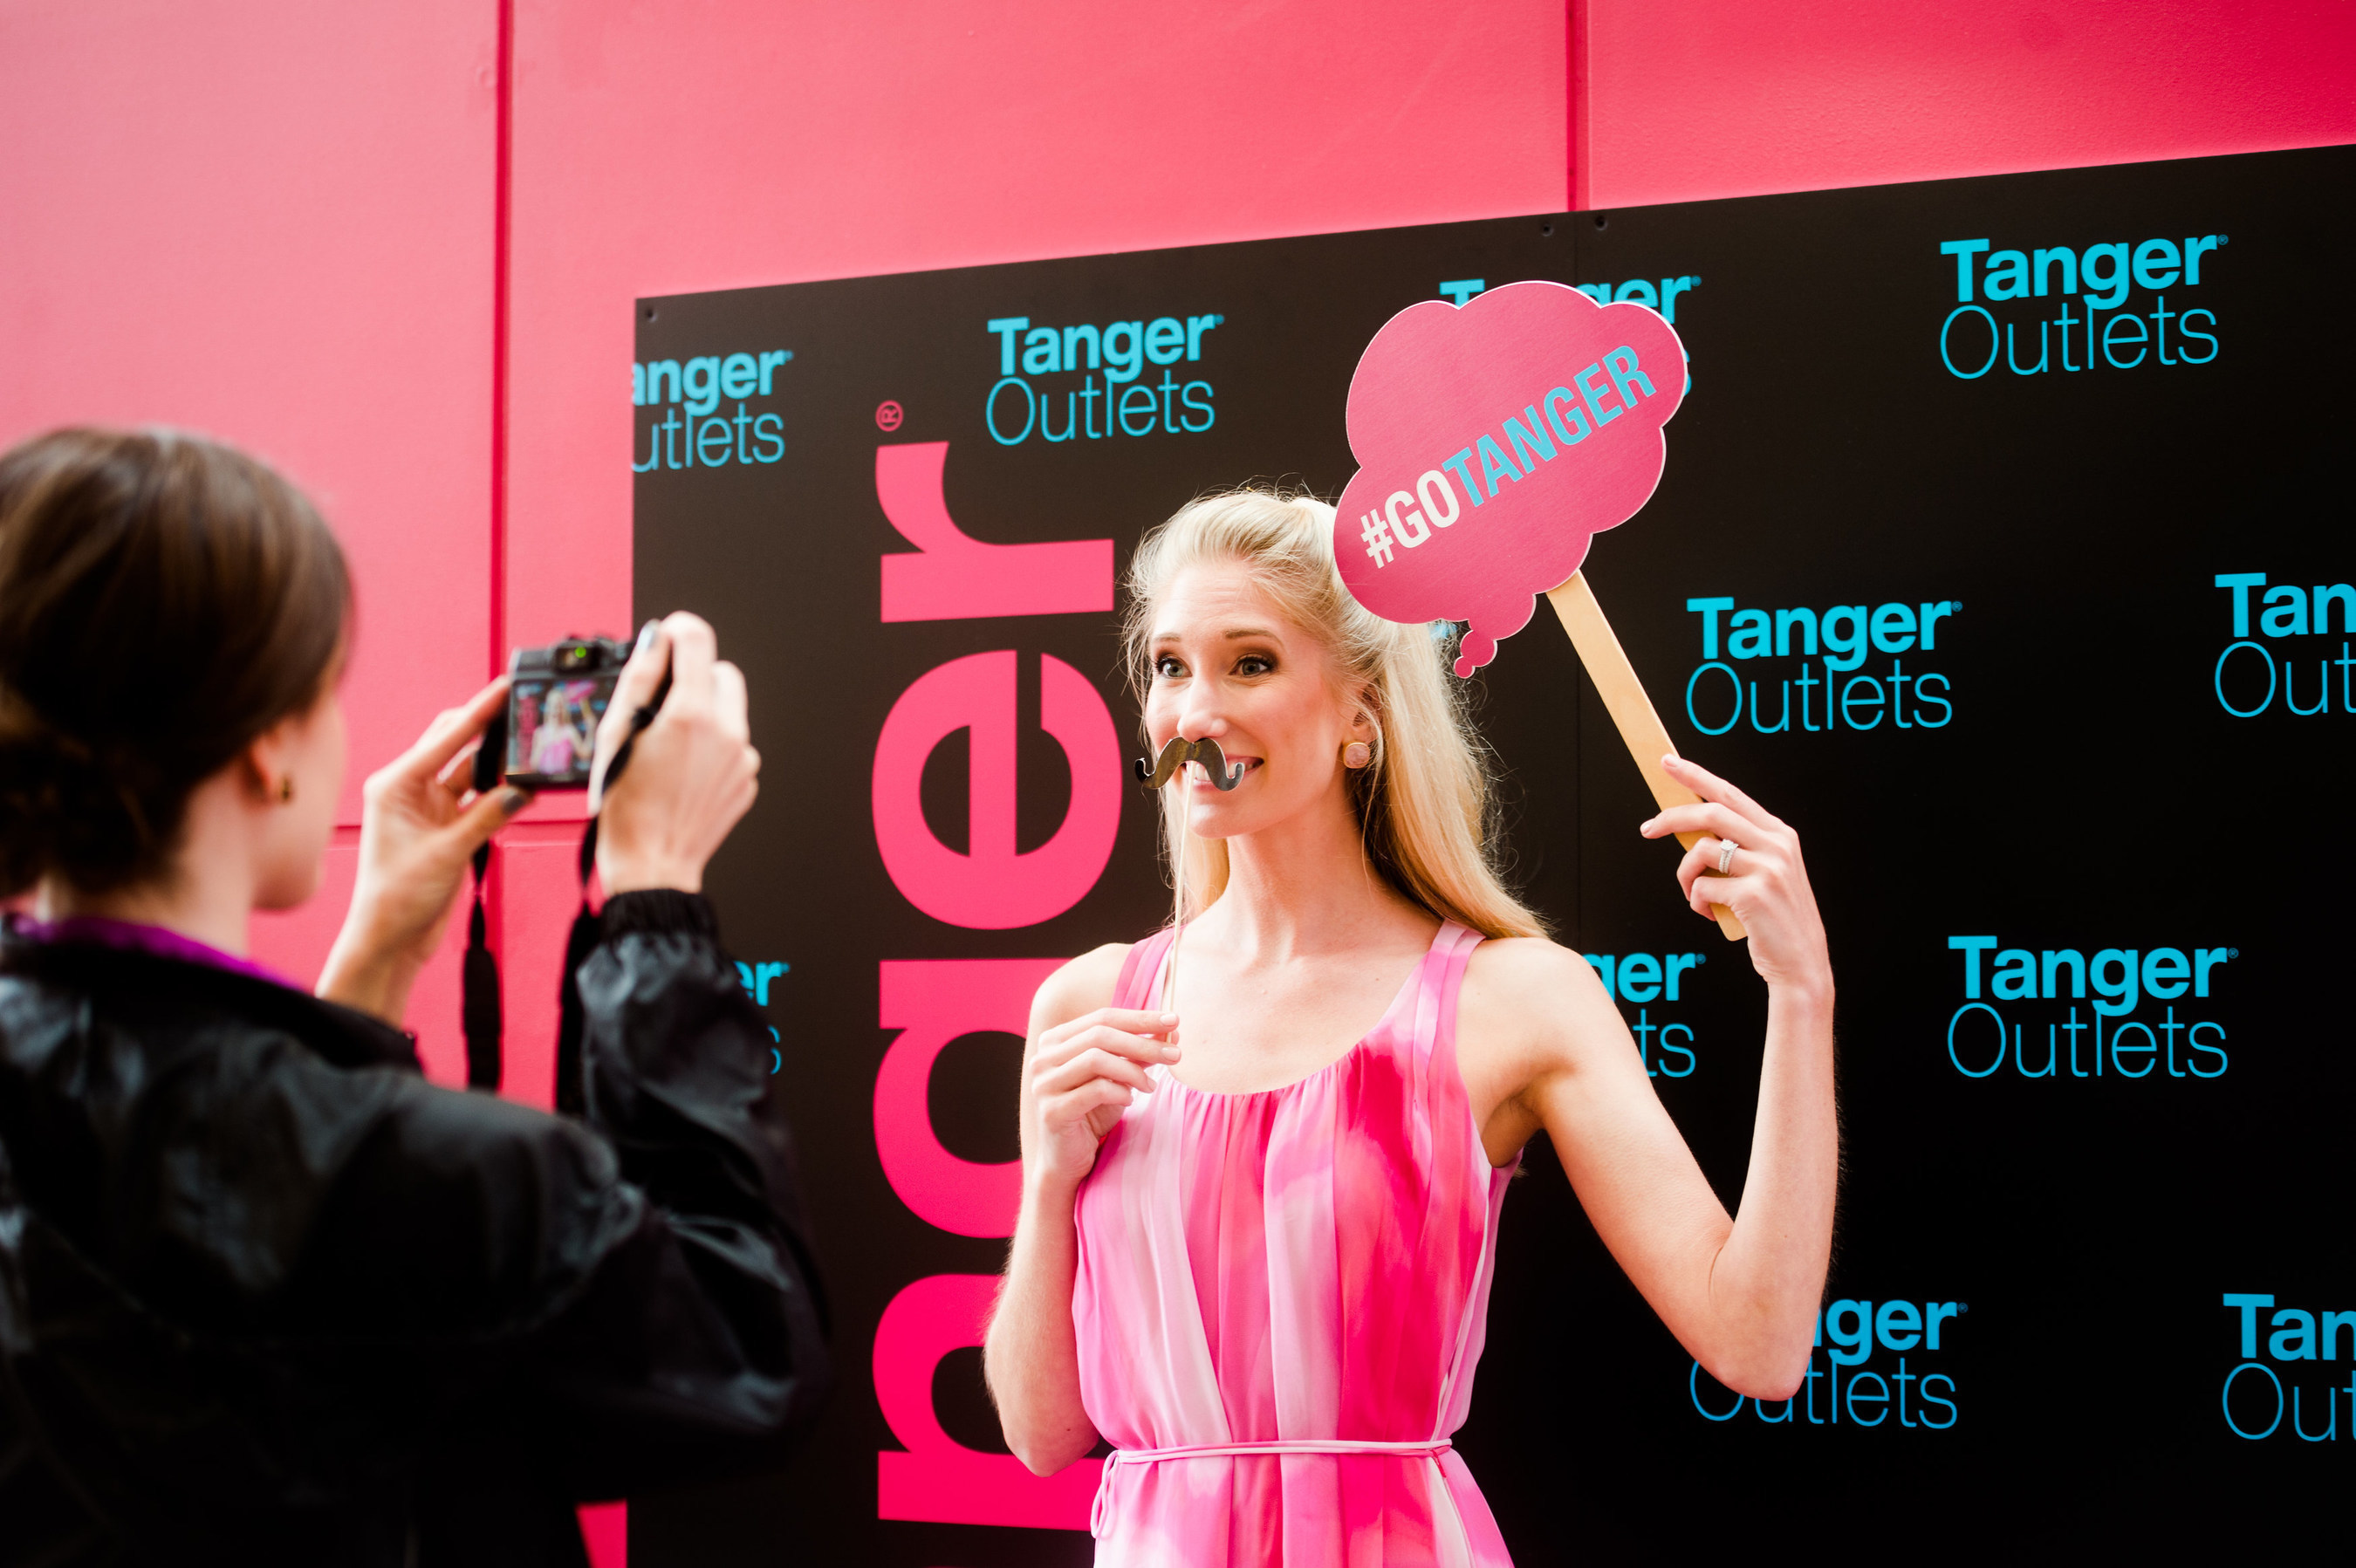 Tanger Instagram Lounge with Stylist Briana Gurley